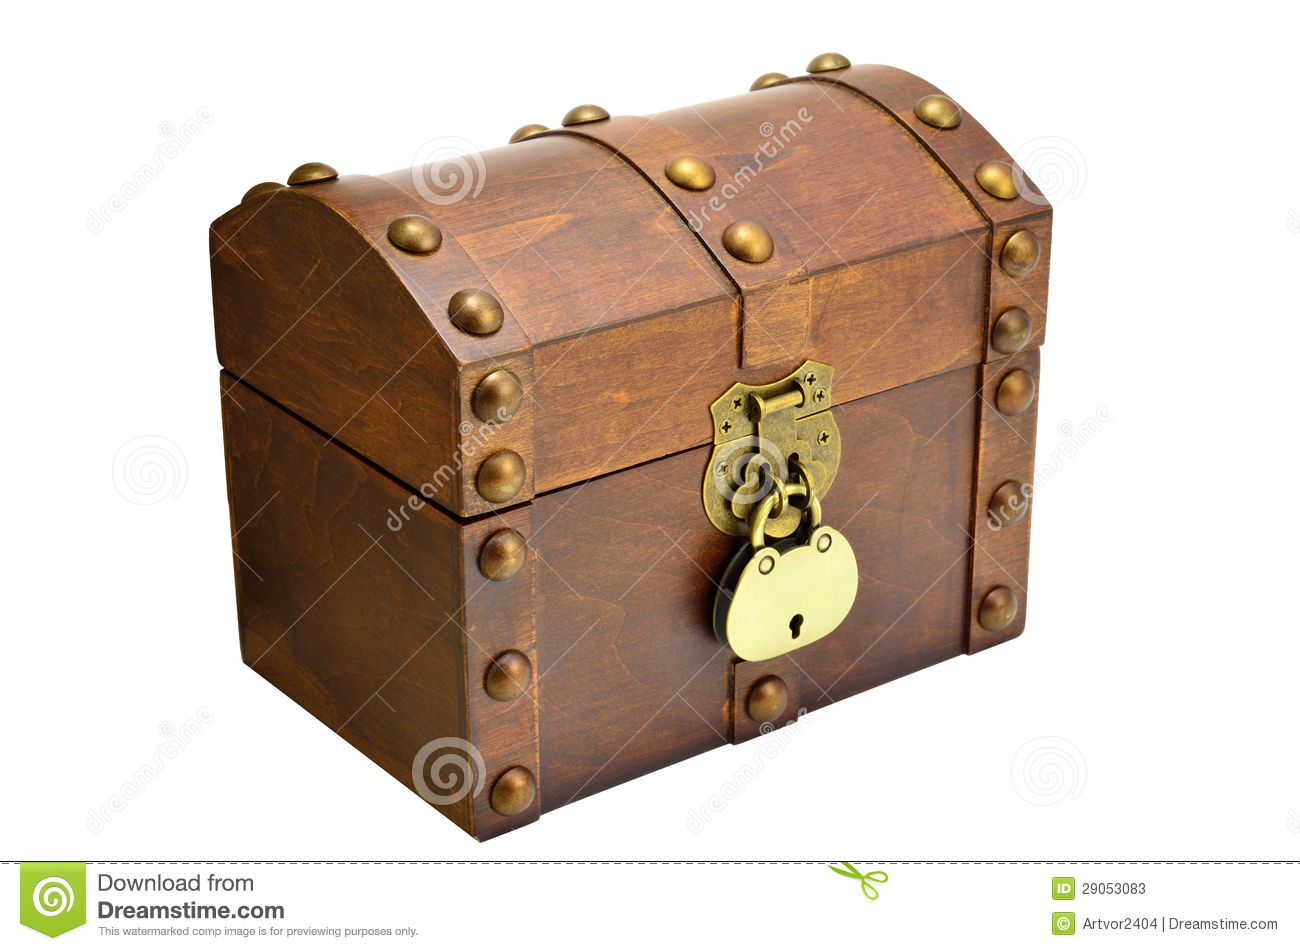 More similar stock images of ` Wooden chest with lock `